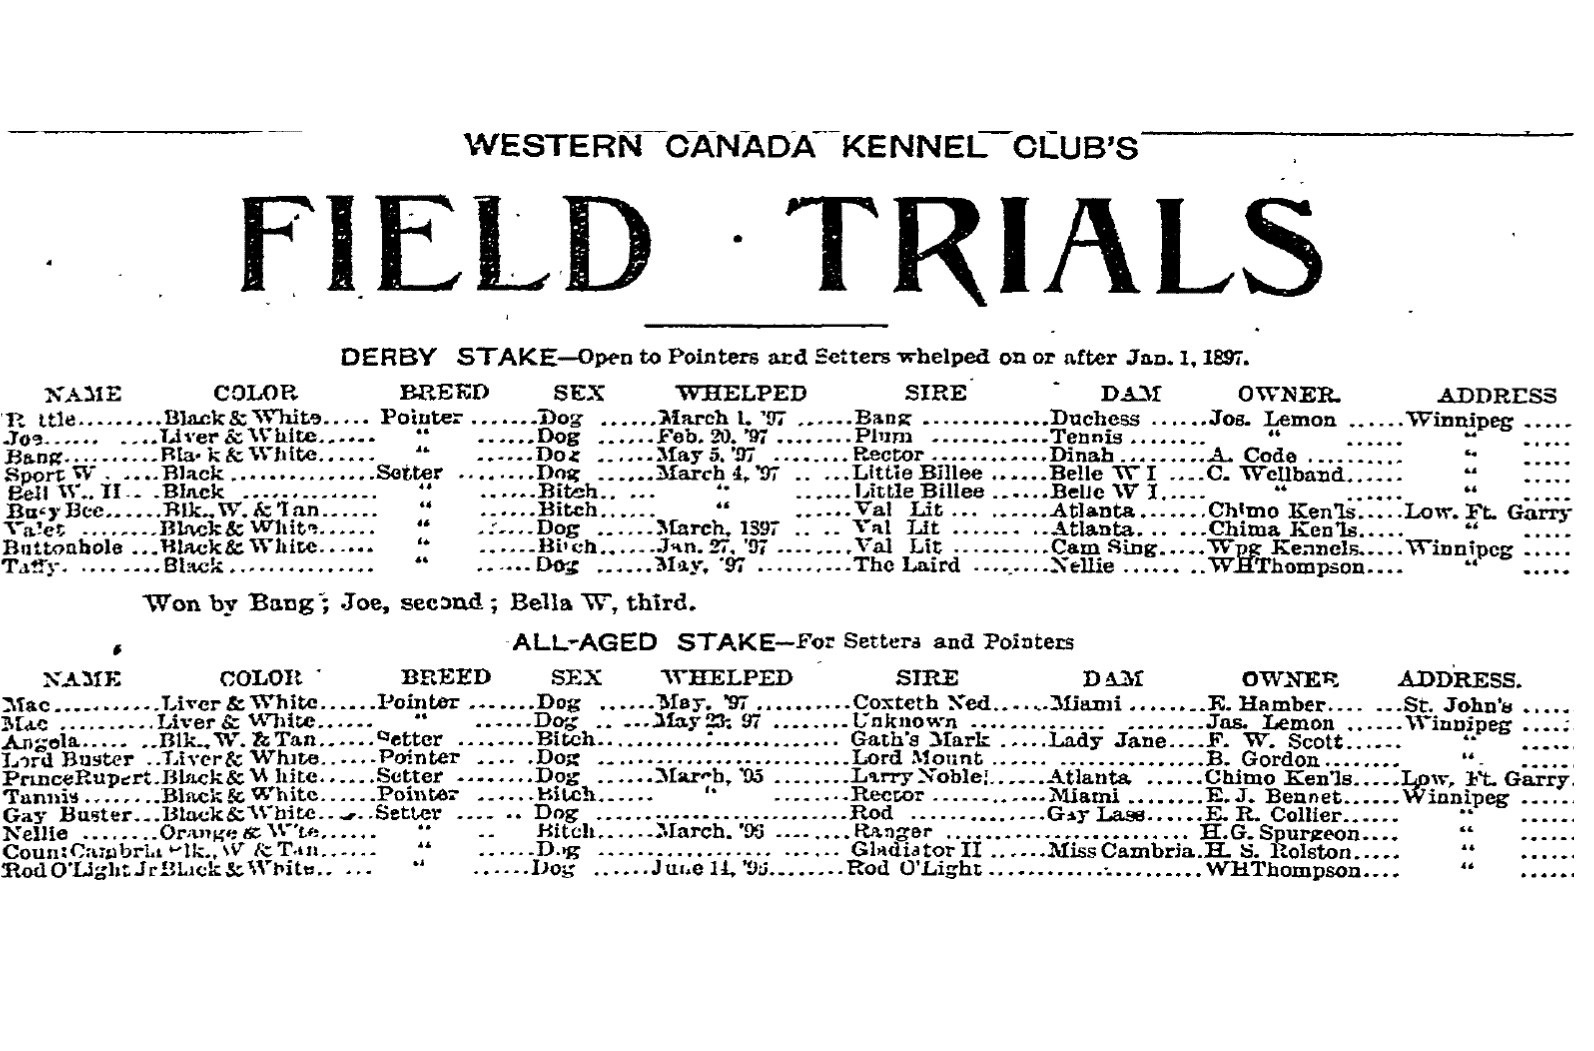 The results of the Western Canada Kennel Club's field trial held in southern Manitoba the September 6th, 1898 edition of the Morning Telegram newspaper.